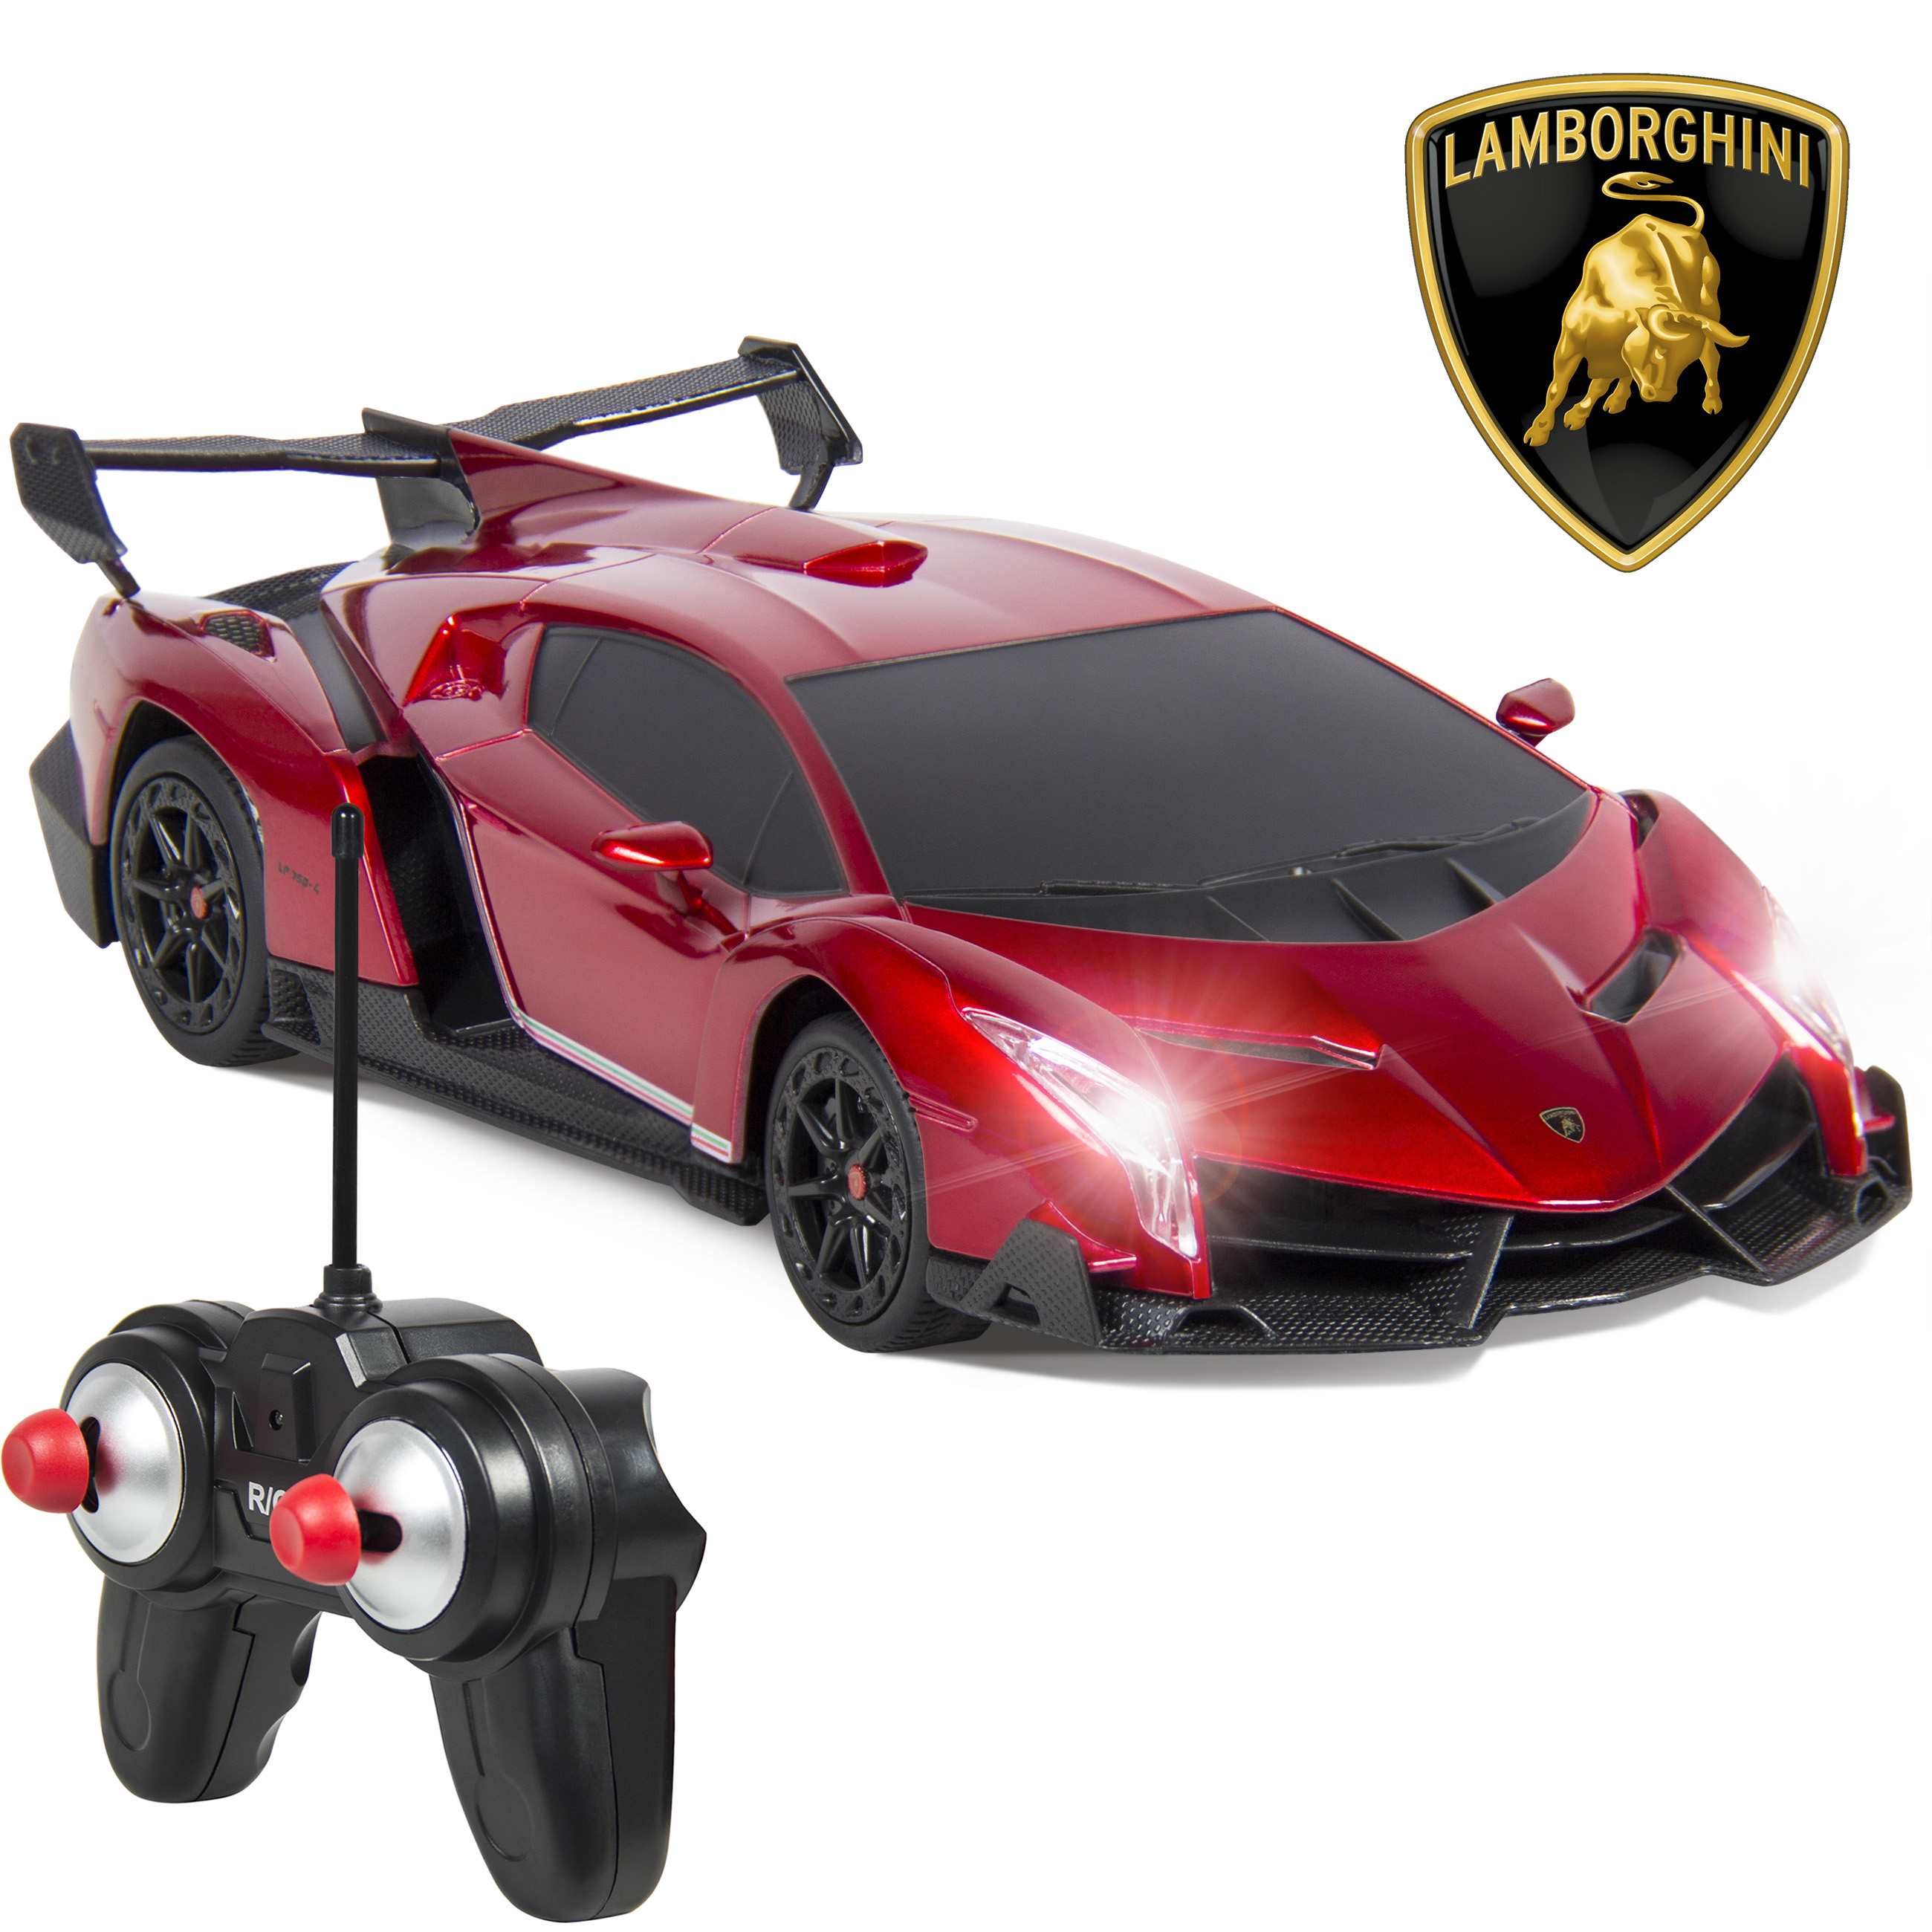 Best Choice Products 1/24 Officially Licensed RC Lamborghini Veneno Sport Racing Car w/ 27MHz Remote Controller, Head and Taillights, Shock Suspension, Fine Tune Adjustment - Red